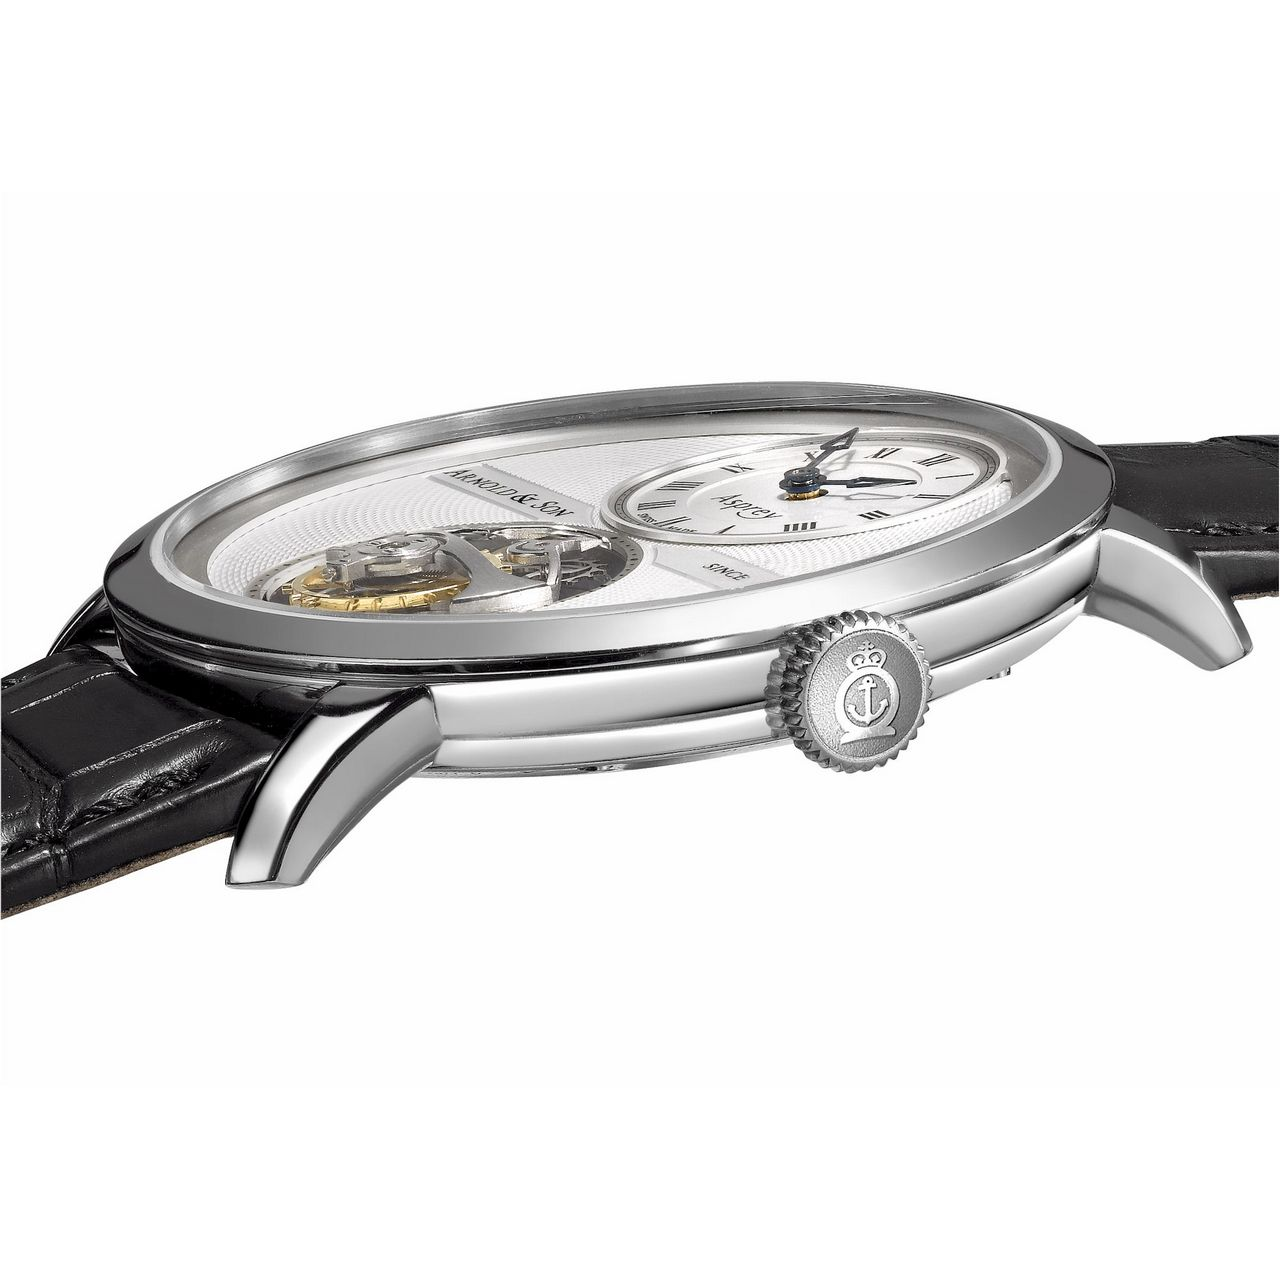 the-ultra-thin-tourbillon-watch-from-asprey-with-arnold-son_0-100_3